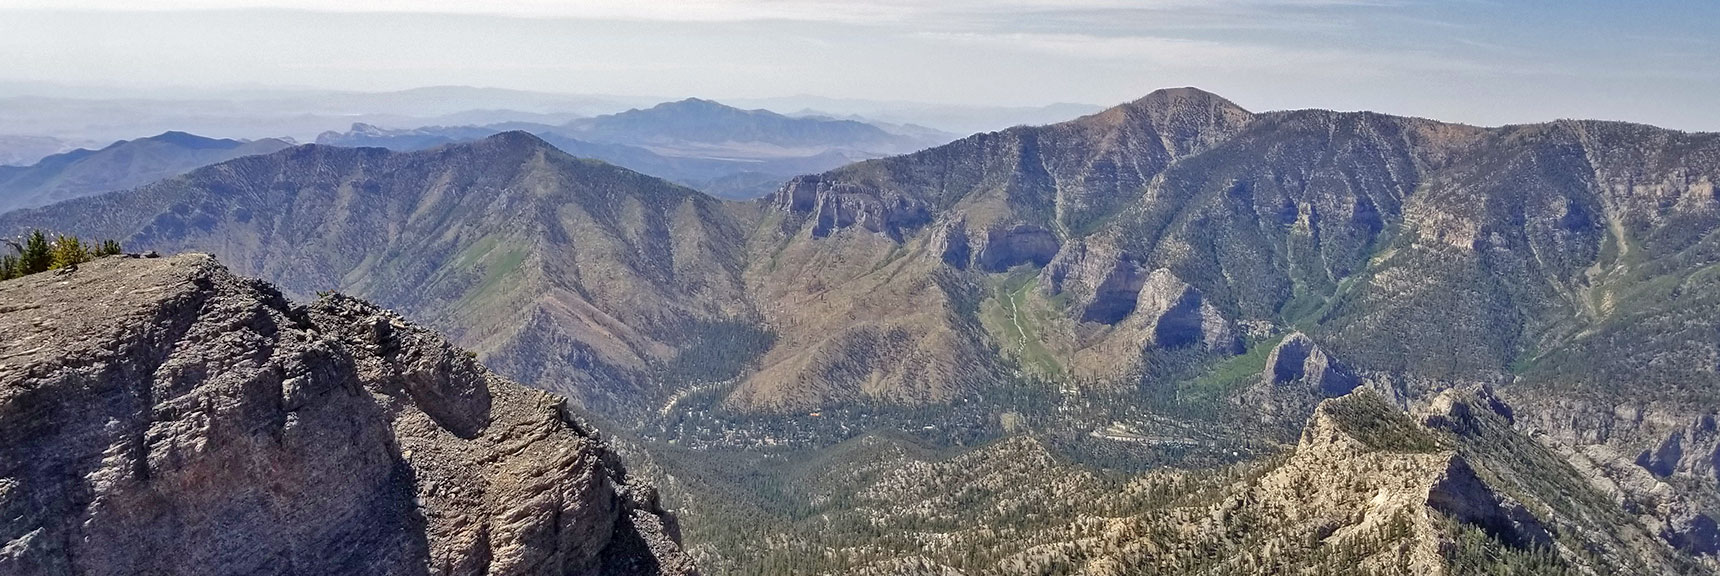 Harris Mountain, Saddle, Lovell Canyon, Potasi Mountain, Griffith Peak and Cathedral Rock from Mummy's Knees | Mummy Mountain's Knees | Mt. Charleston Wilderness, Nevada 025